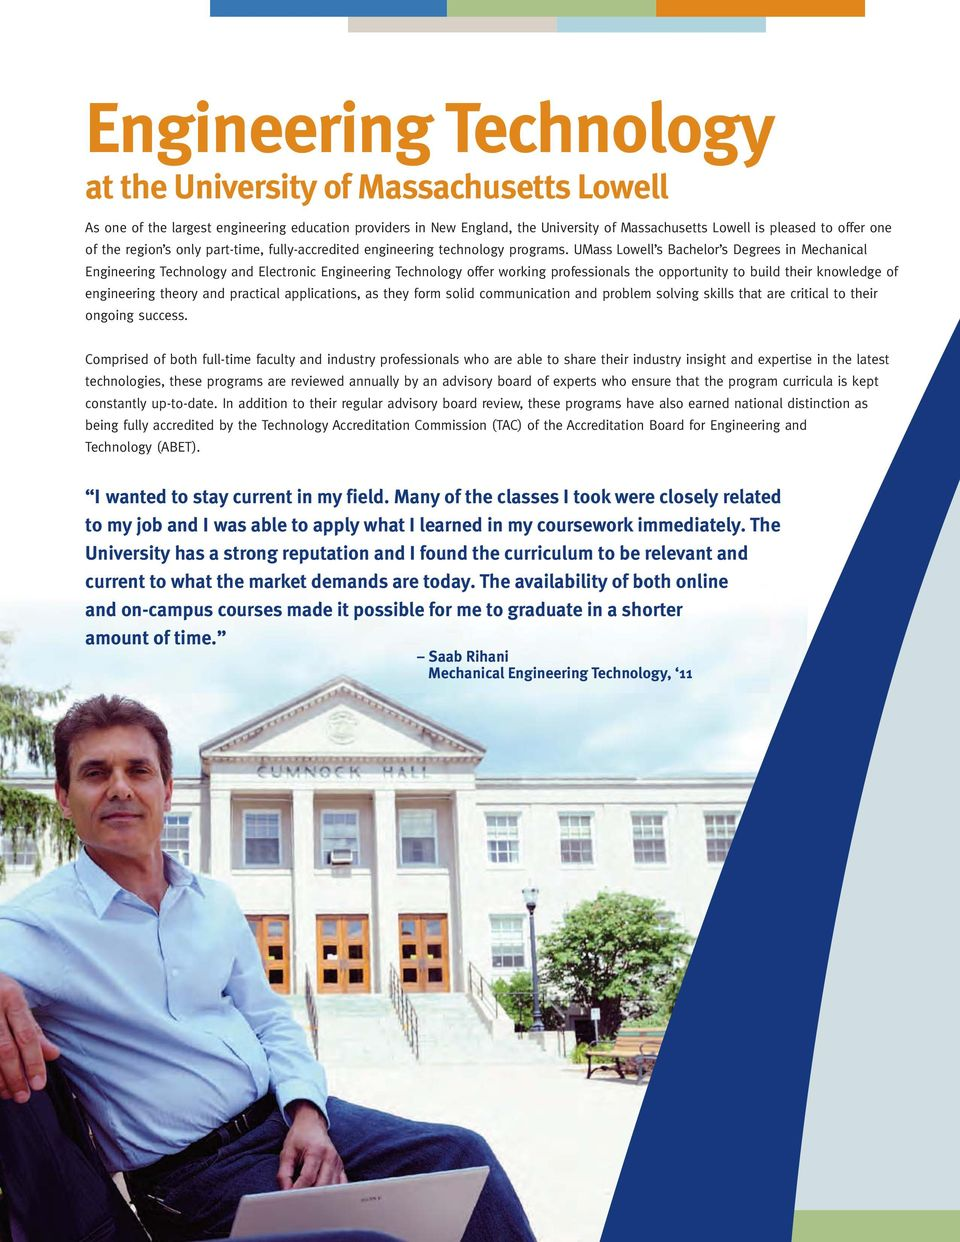 UMass Lowell s Bachelor s Degrees in Mechanical Engineering Technology and Electronic Engineering Technology offer working professionals the opportunity to build their knowledge of engineering theory